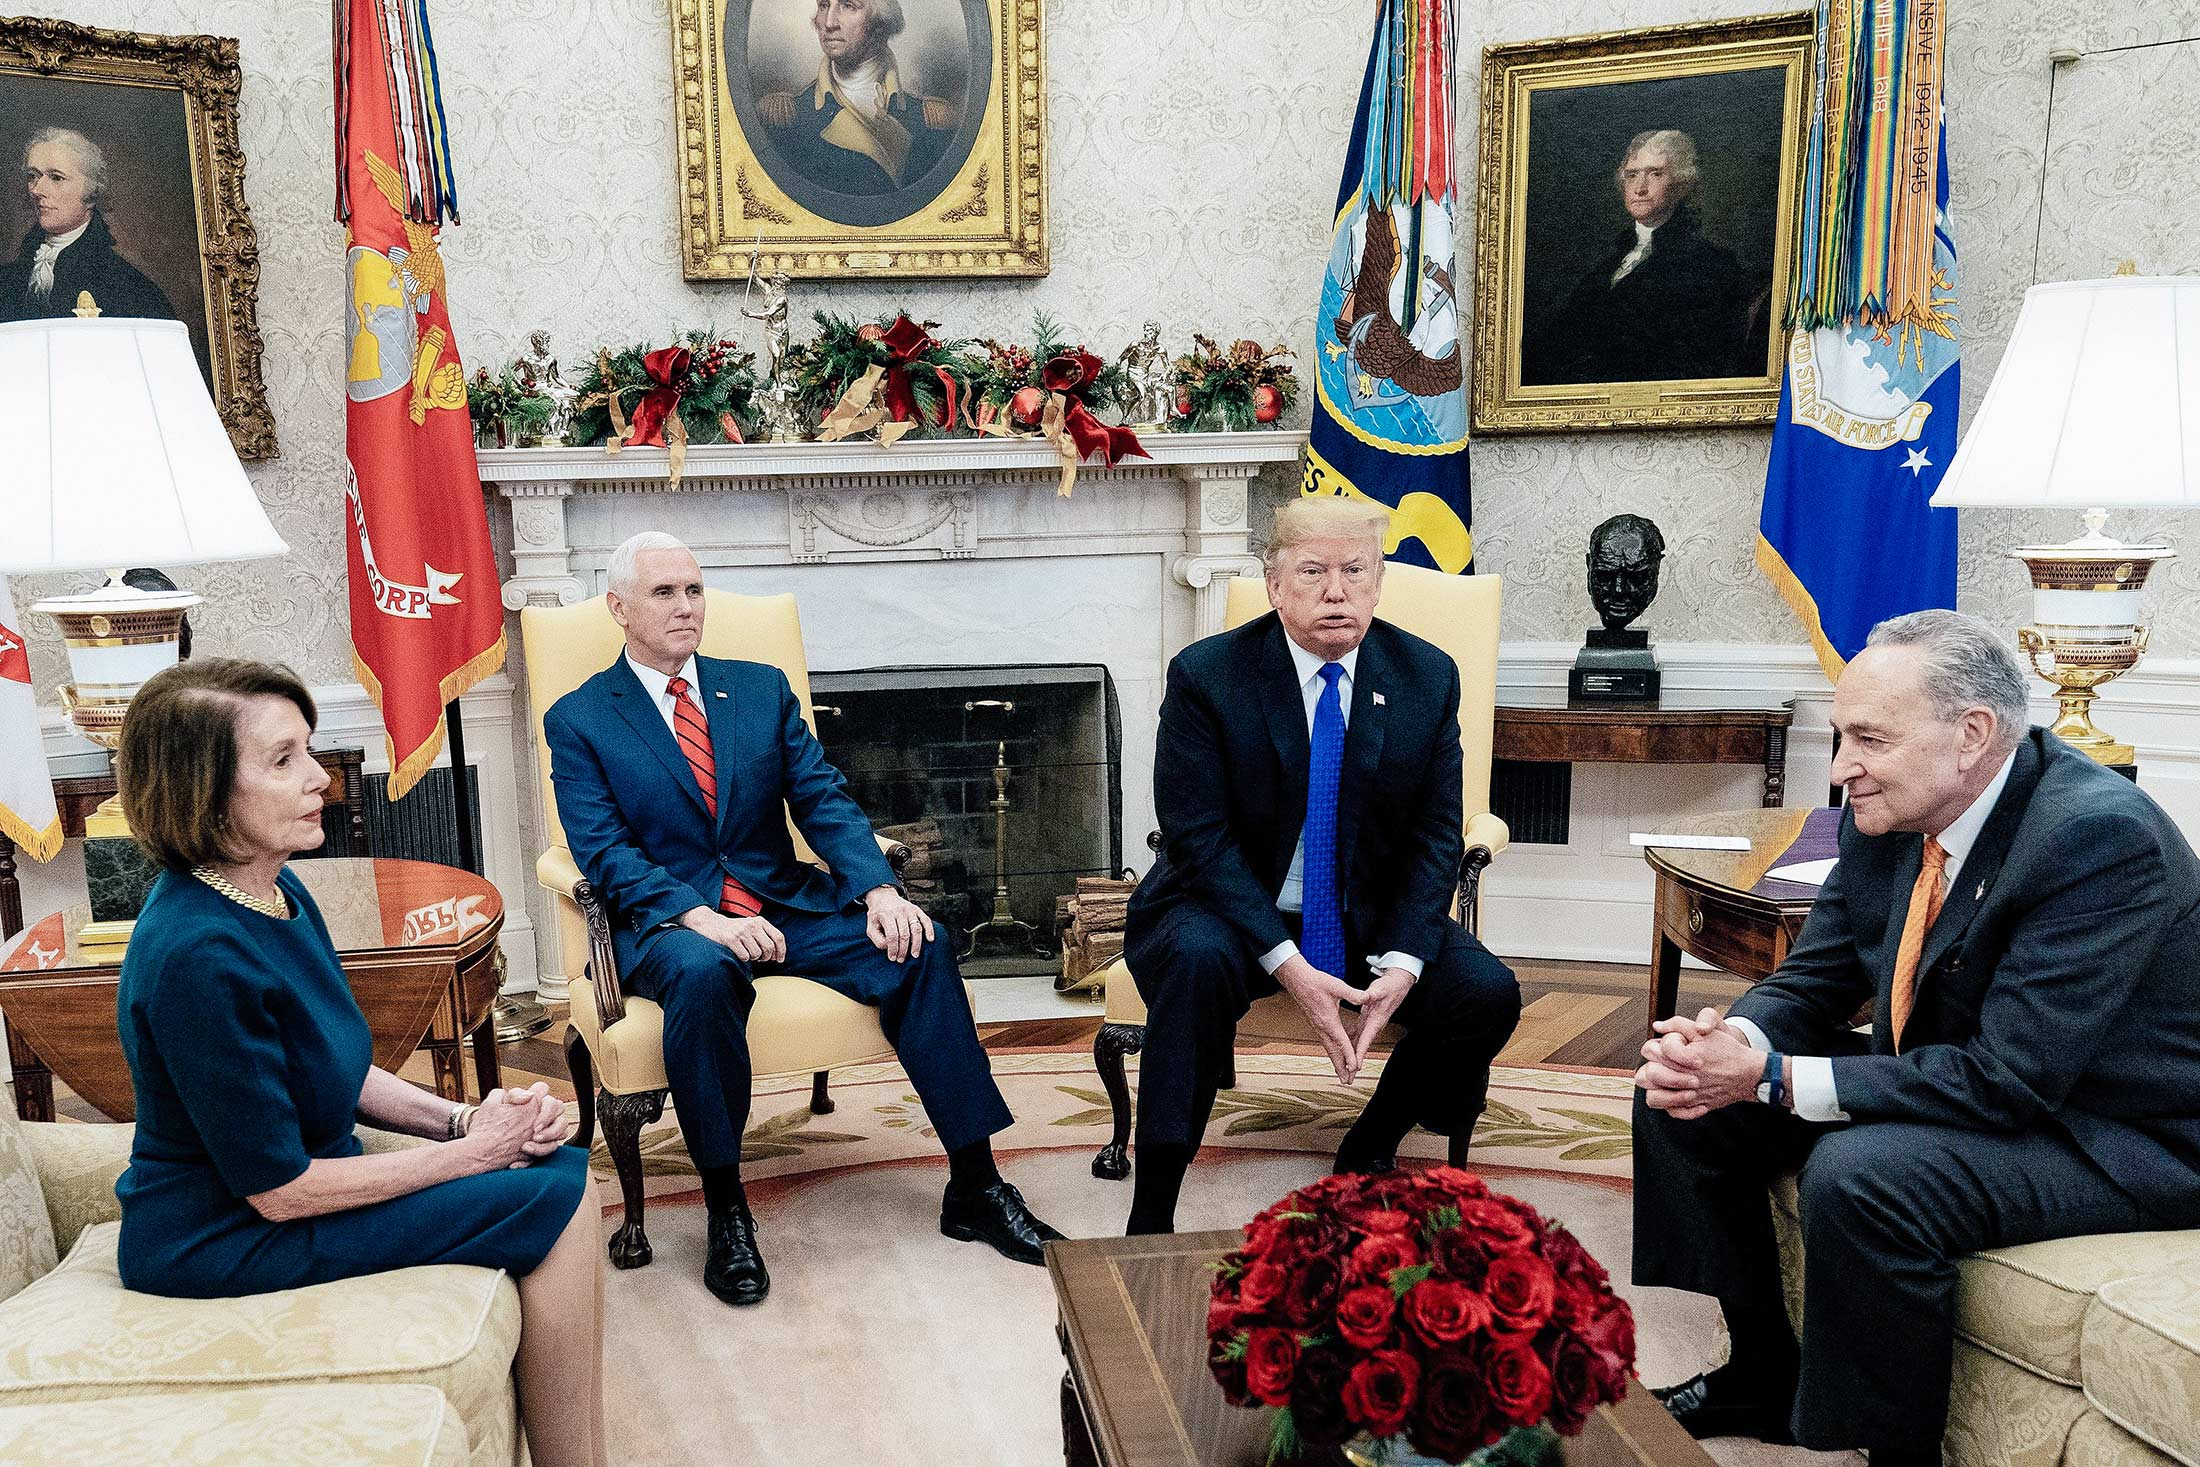 Nancy Pelosi, Mike Pence, Donald Trump, and Chuck Schumer sitting in the White House.